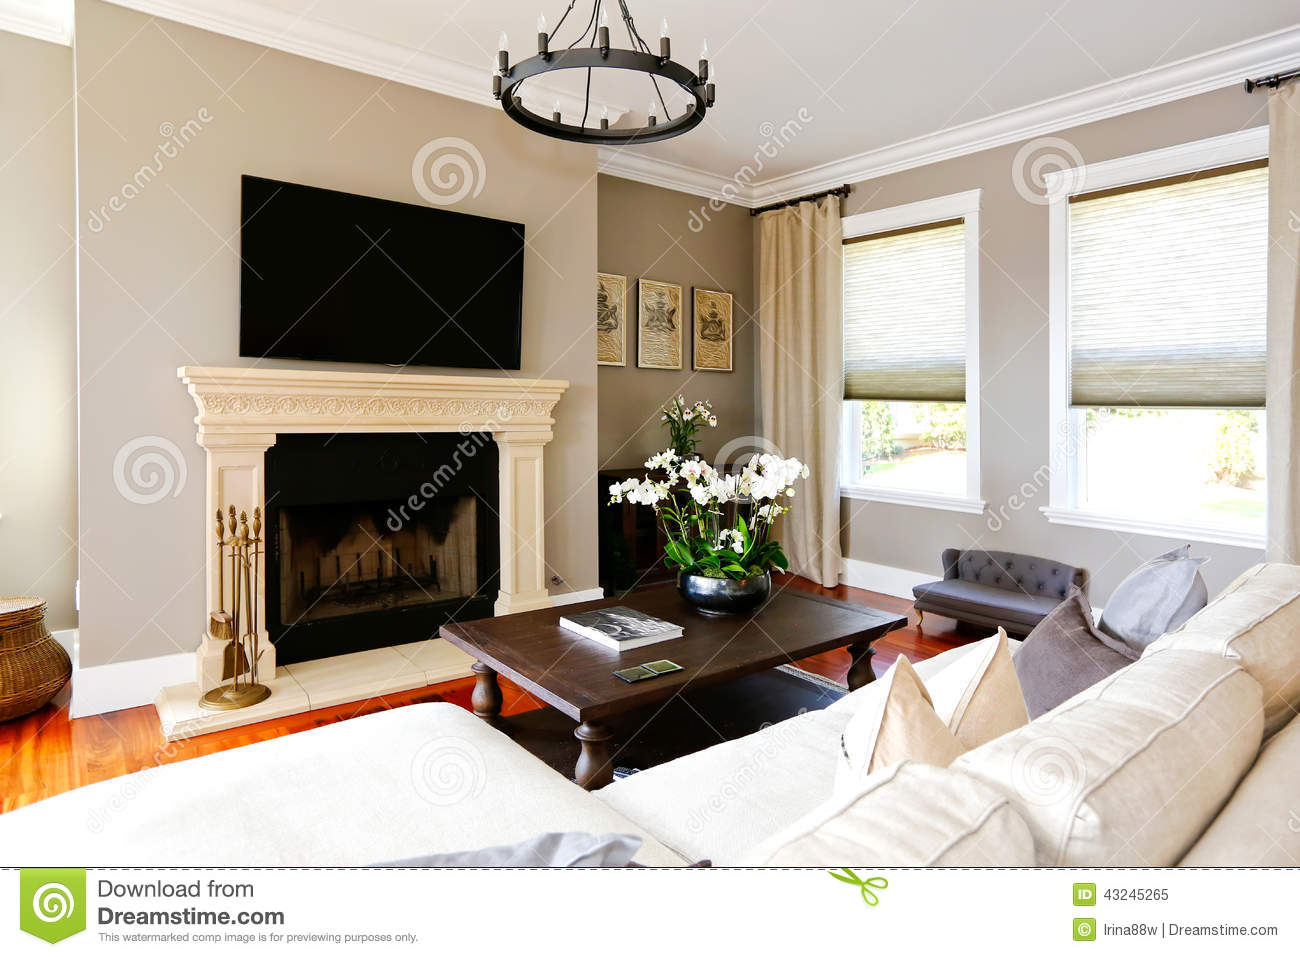 1 512 Modern Luxury Living Room Tv Photos Free Royalty Free Stock Photos From Dreamstime